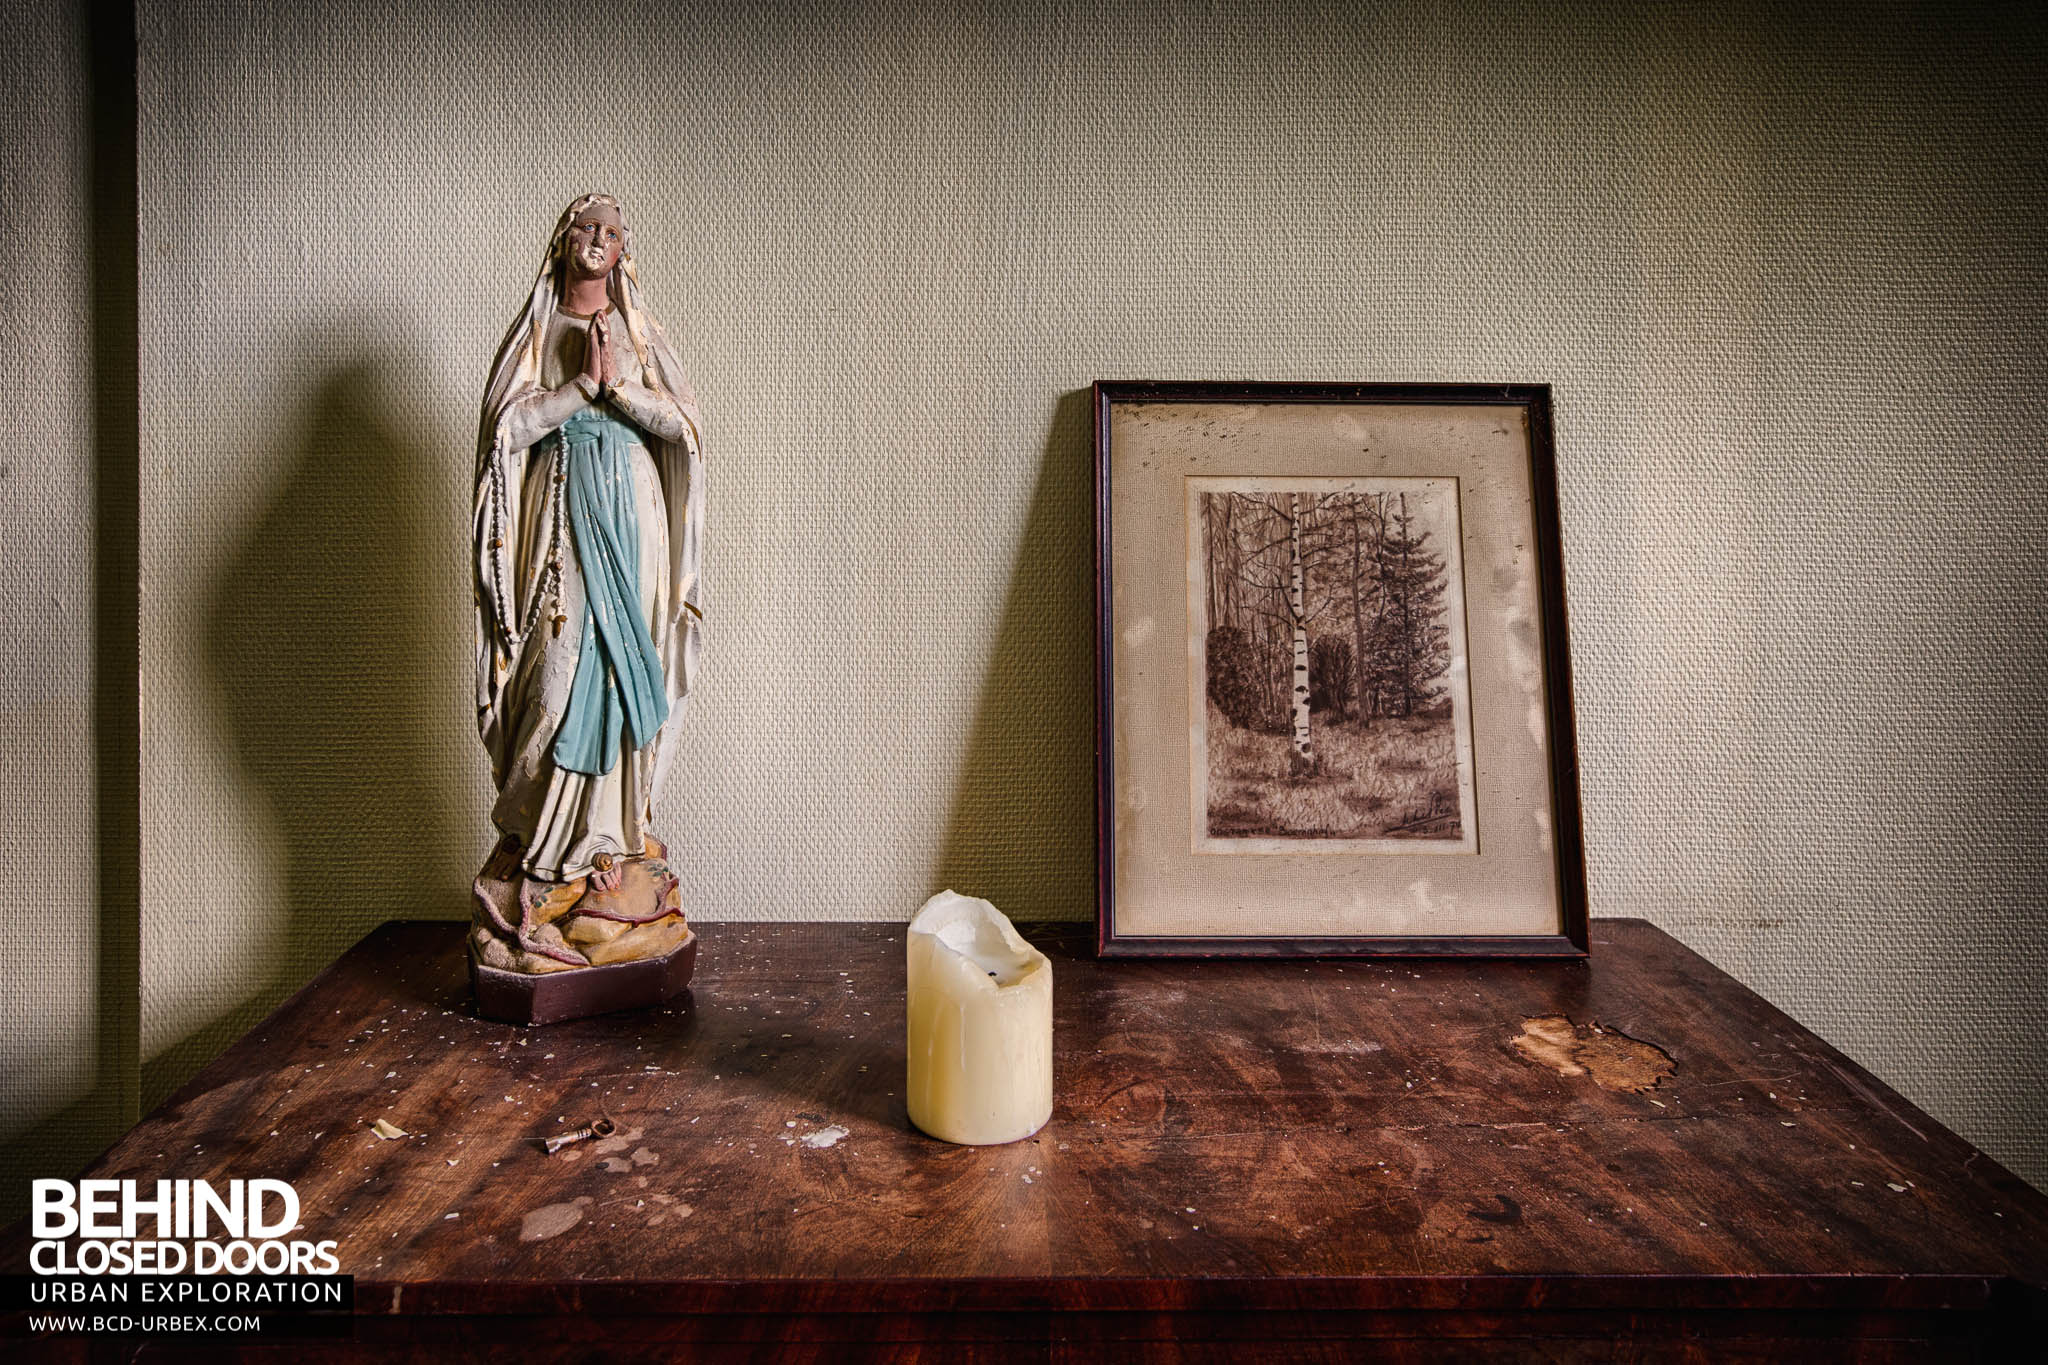 chateau de la chapelle belgium. Chateau De La Chapelle \u2013 Side Table With Religious Figure, Candle And Picture Belgium